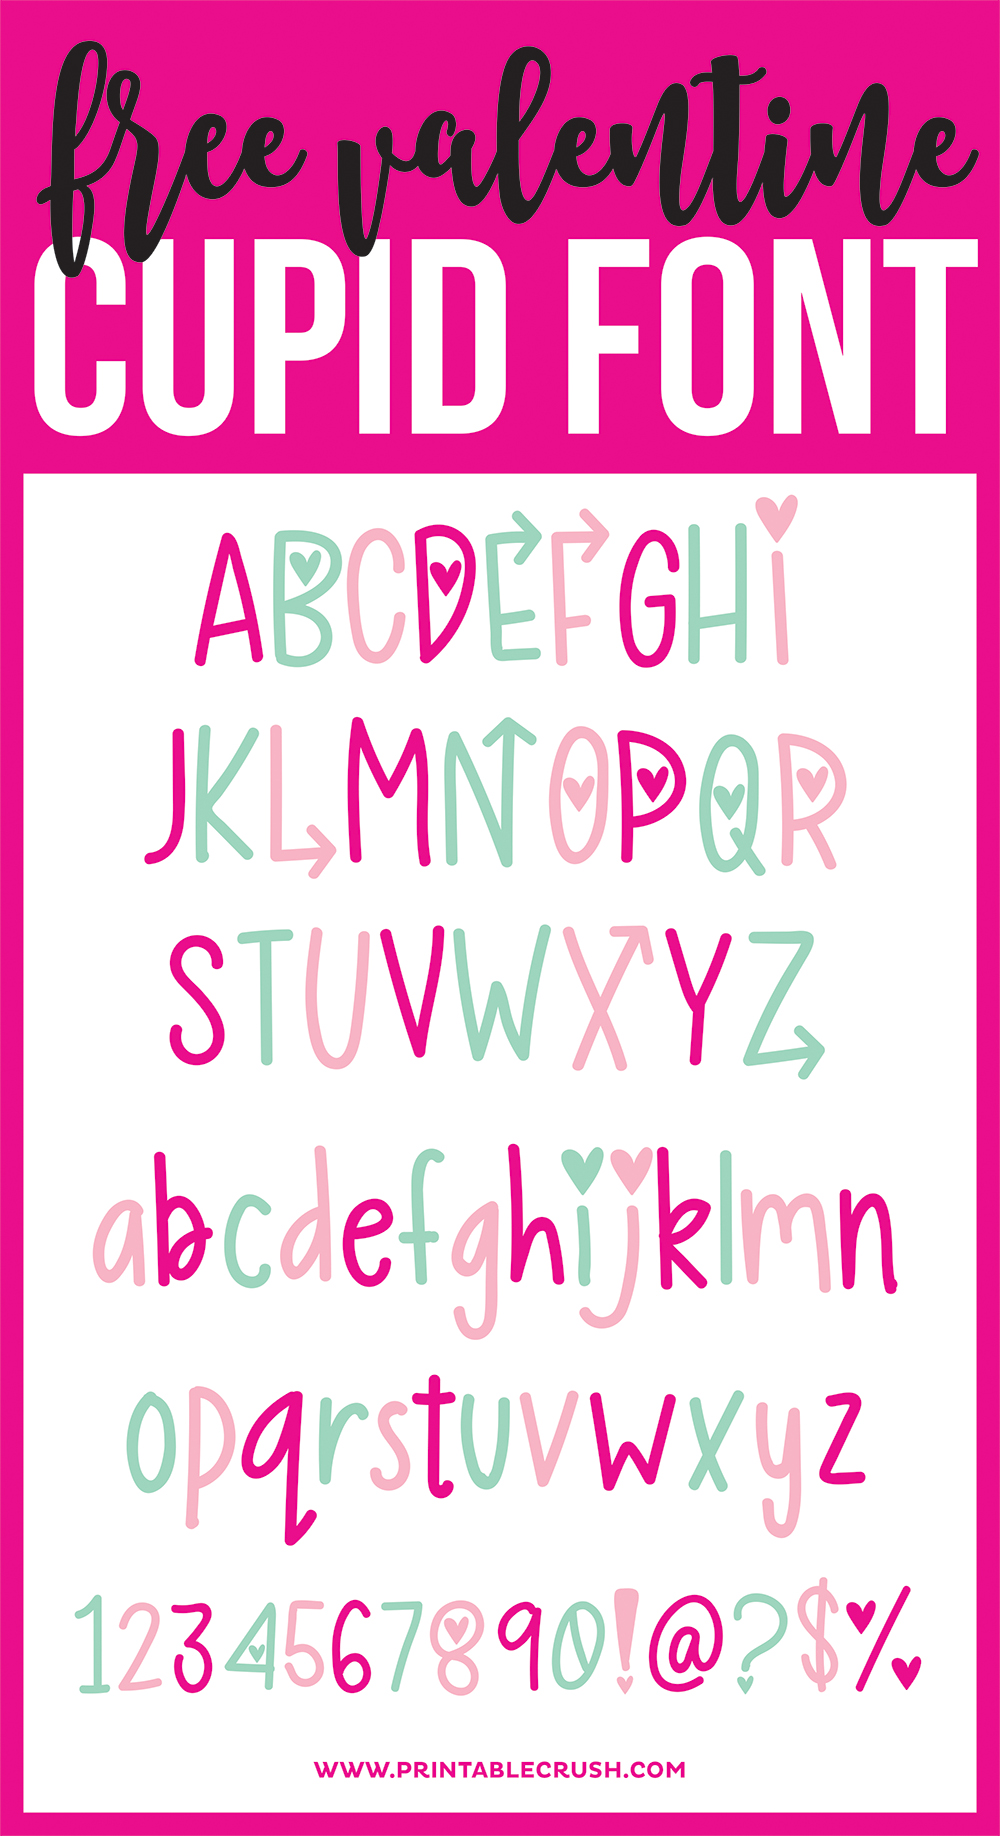 www.printablecrush.comfree valentinecupid Font